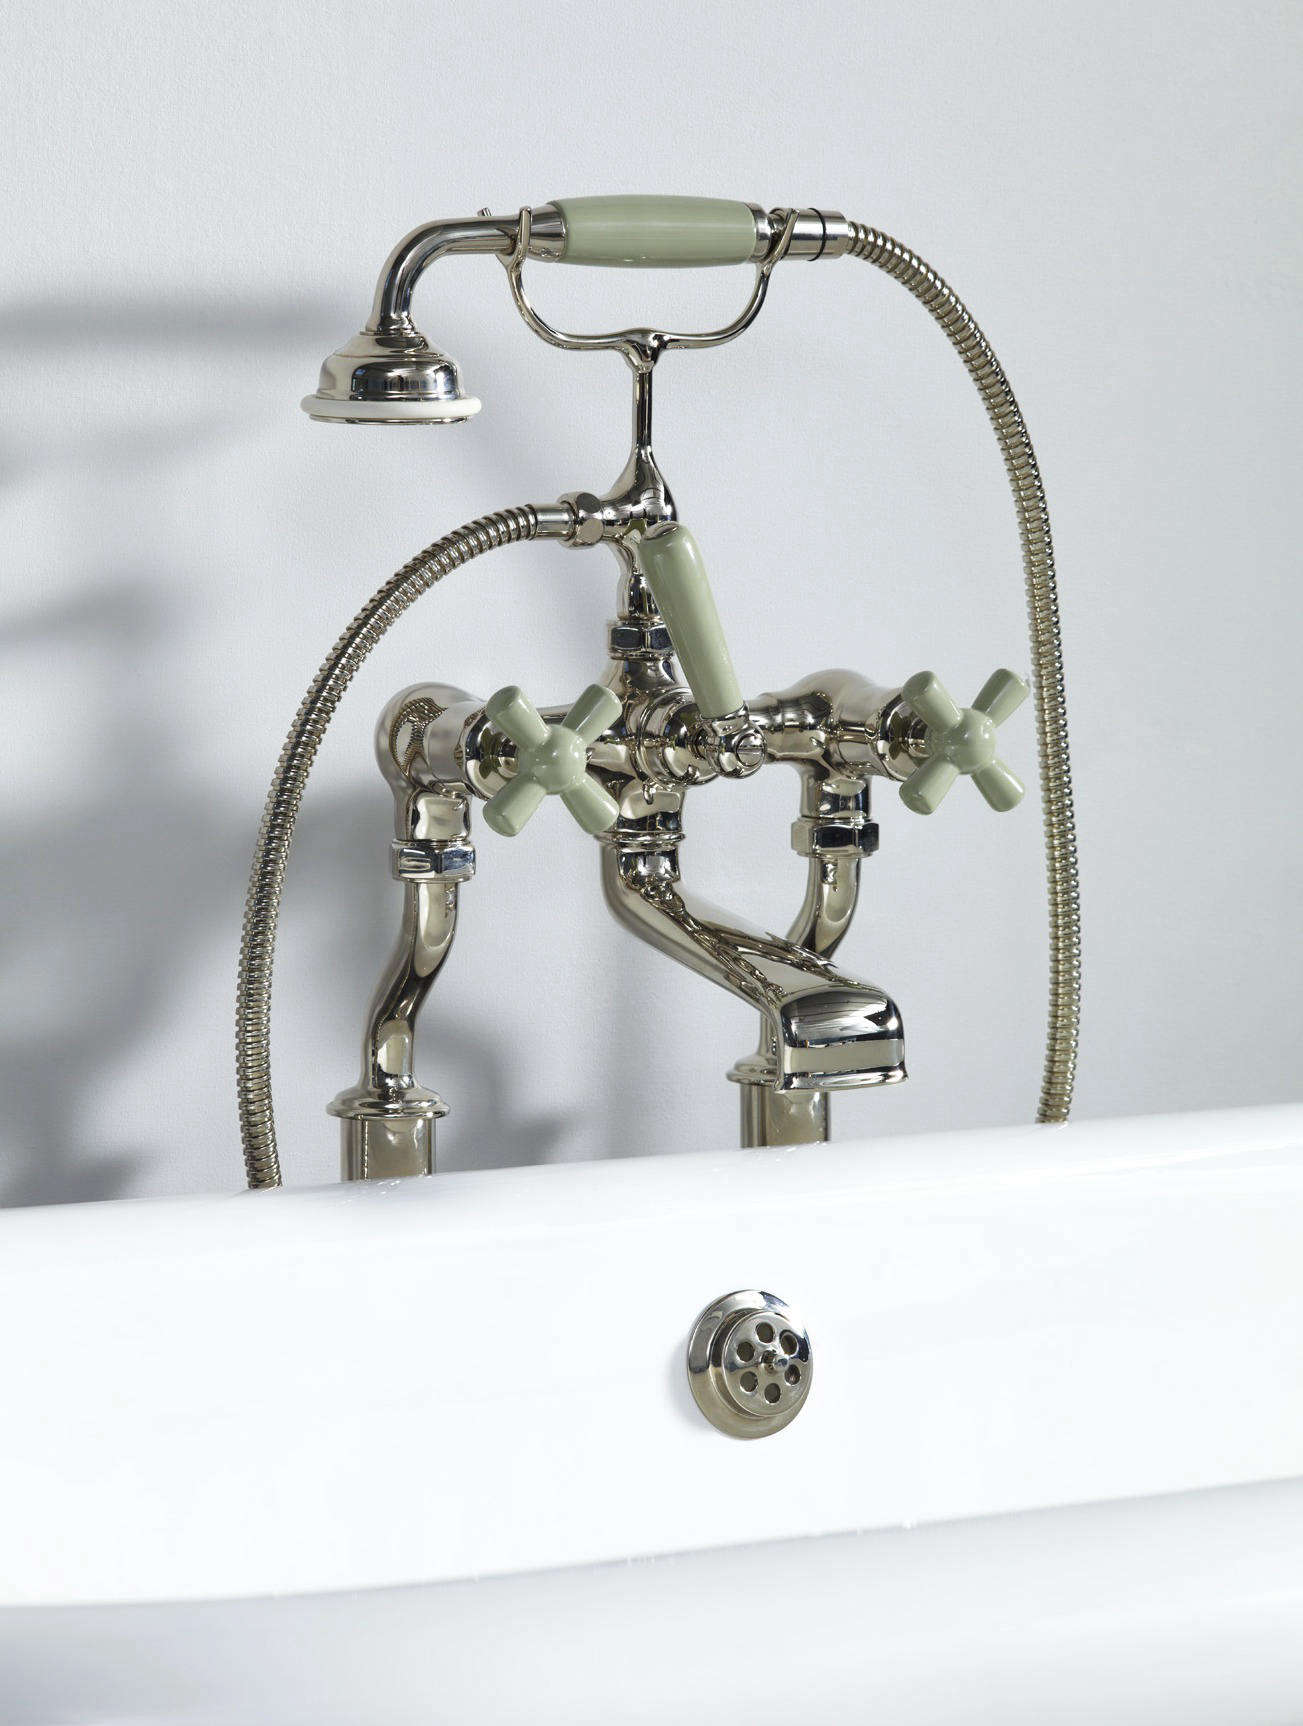 The Rockwell Bath Shower Mixer with Free Standing Legs, shown in Willow Green, pairs with freestanding bathtubs and can be ordered with colorful crossheads and handgrip; £1,282.